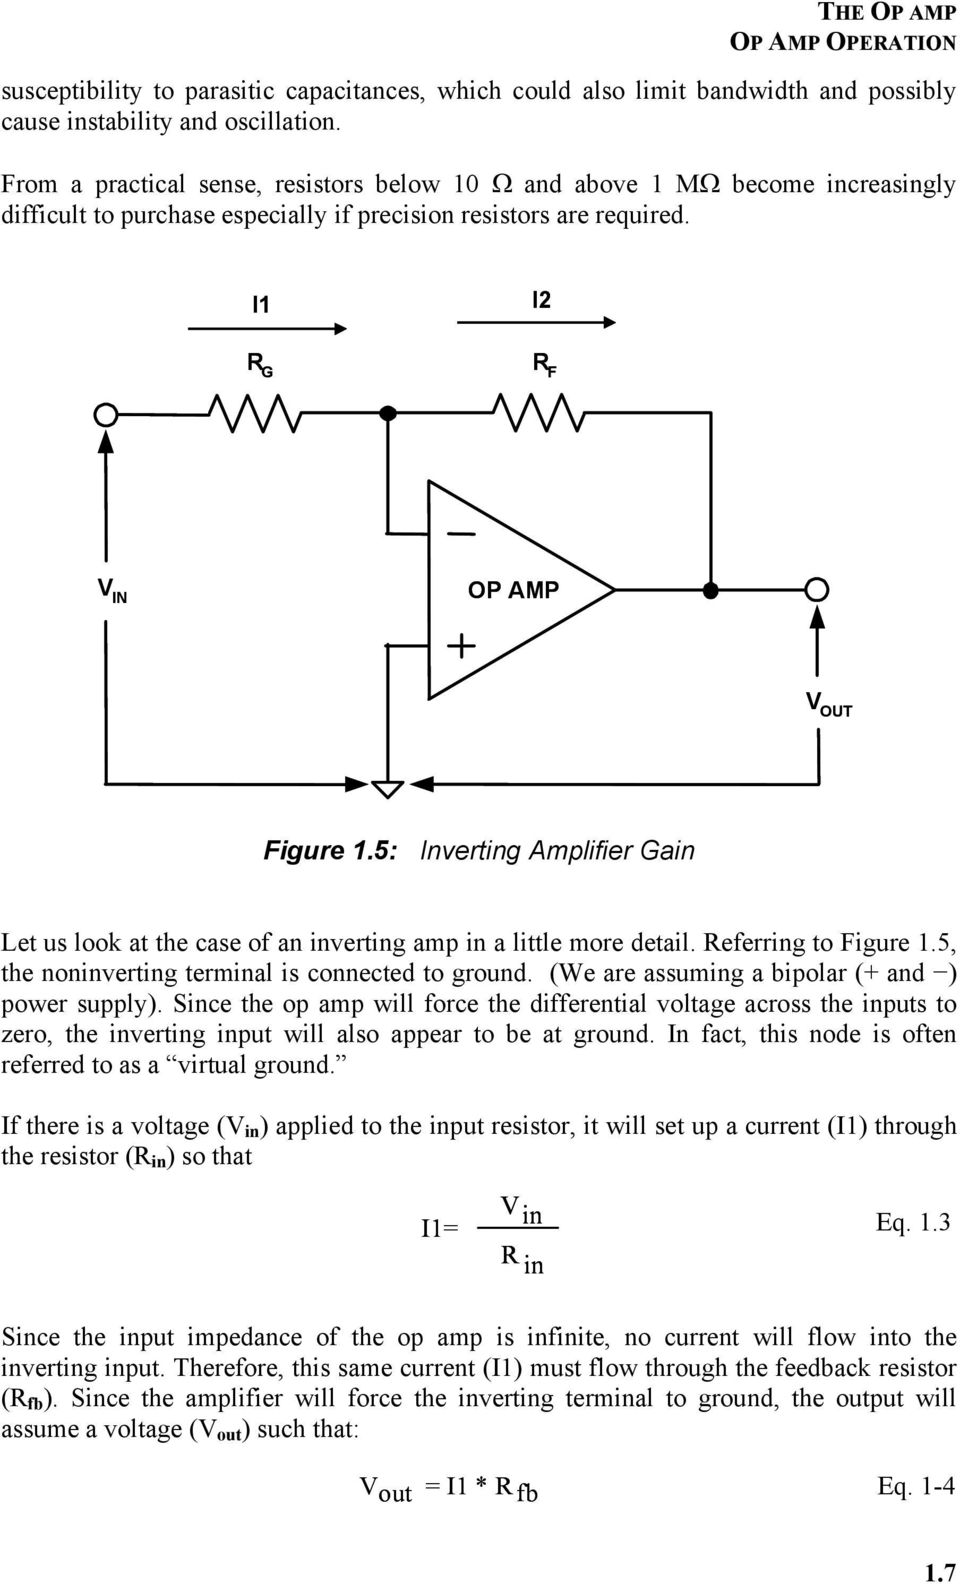 Chapter 1 The Op Amp Pdf Practical Inverting Amplifier Using 741 5 Gain Let Us Look At Case Of An In